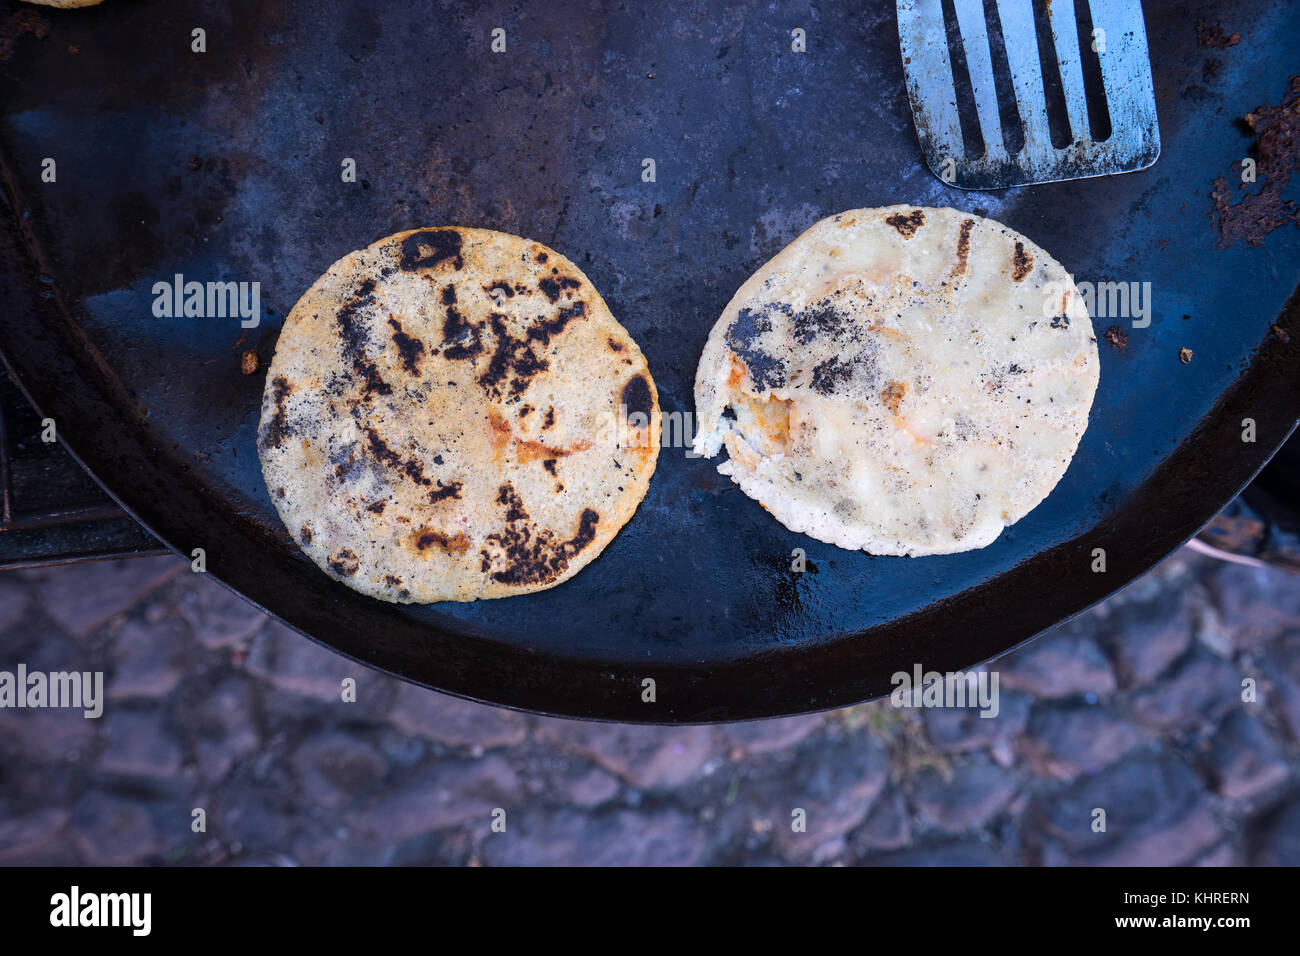 Mexican cheese flat bread called gorditas made by street vendors Stock Photo